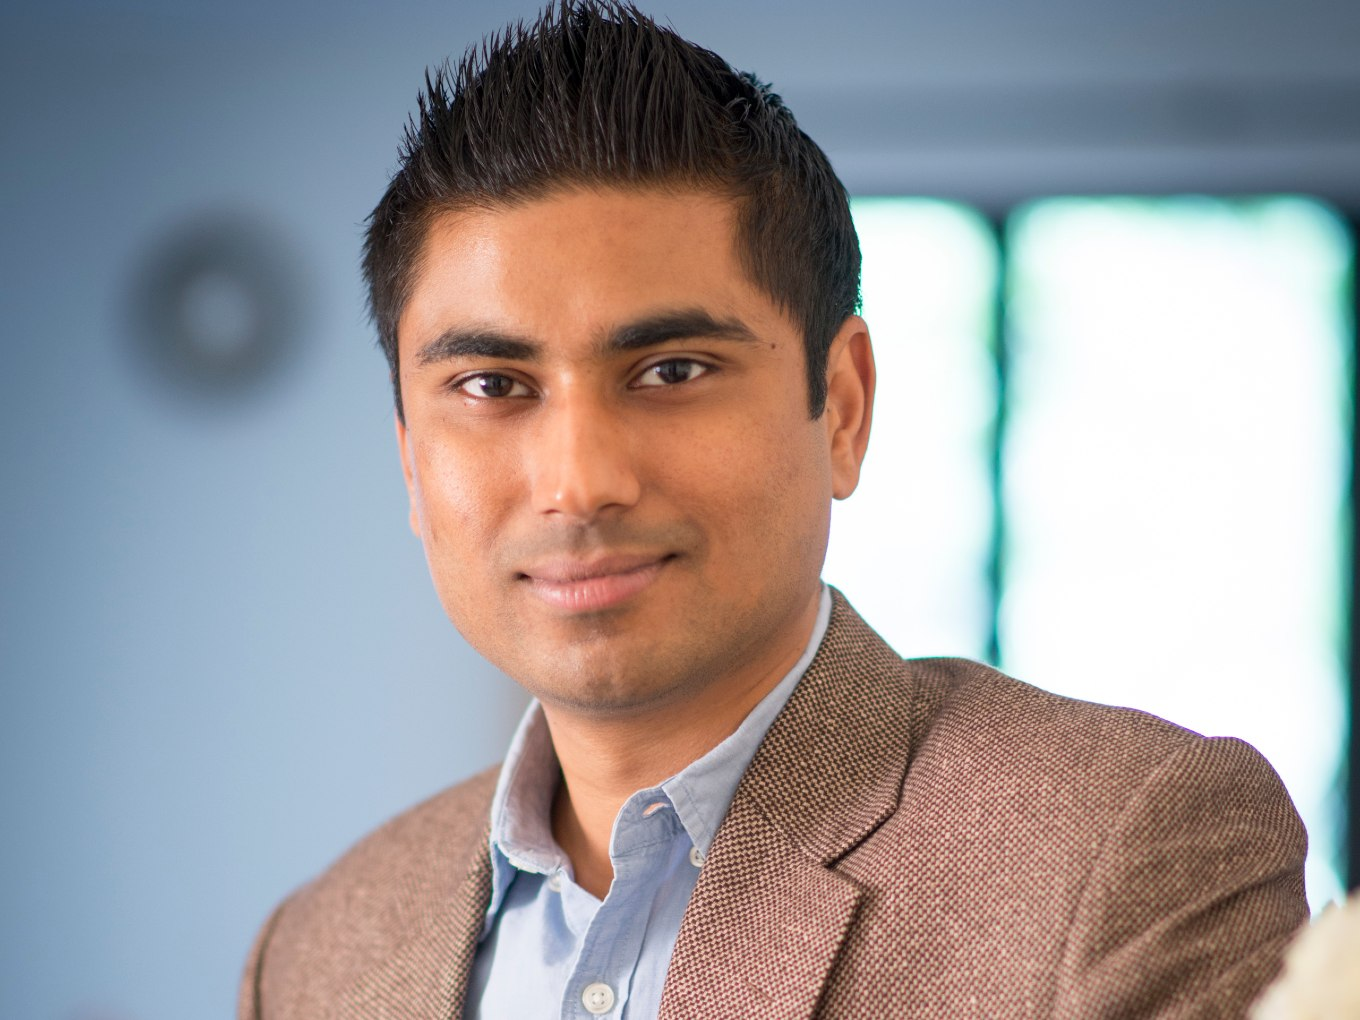 Pallav Nadhani On Bootstrapping FusionCharts At 16 And The Need To Exit